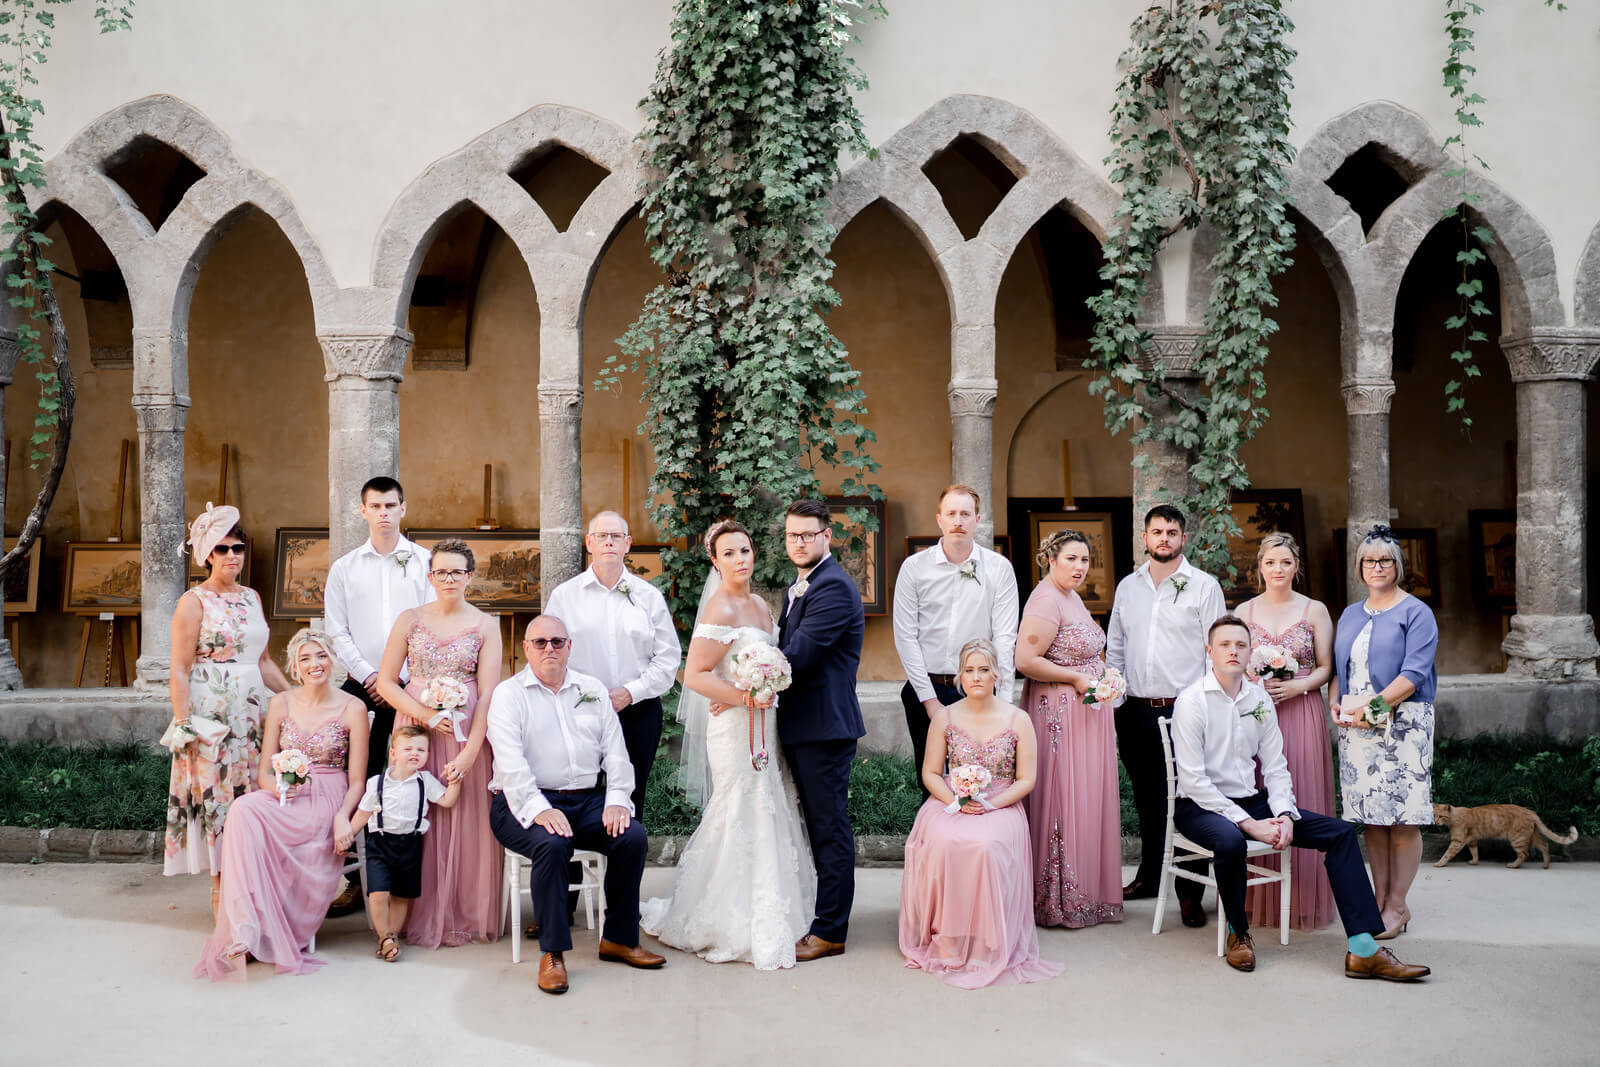 wedding-photographer-and-videographer-Chiostro-di-San-Francesco-09